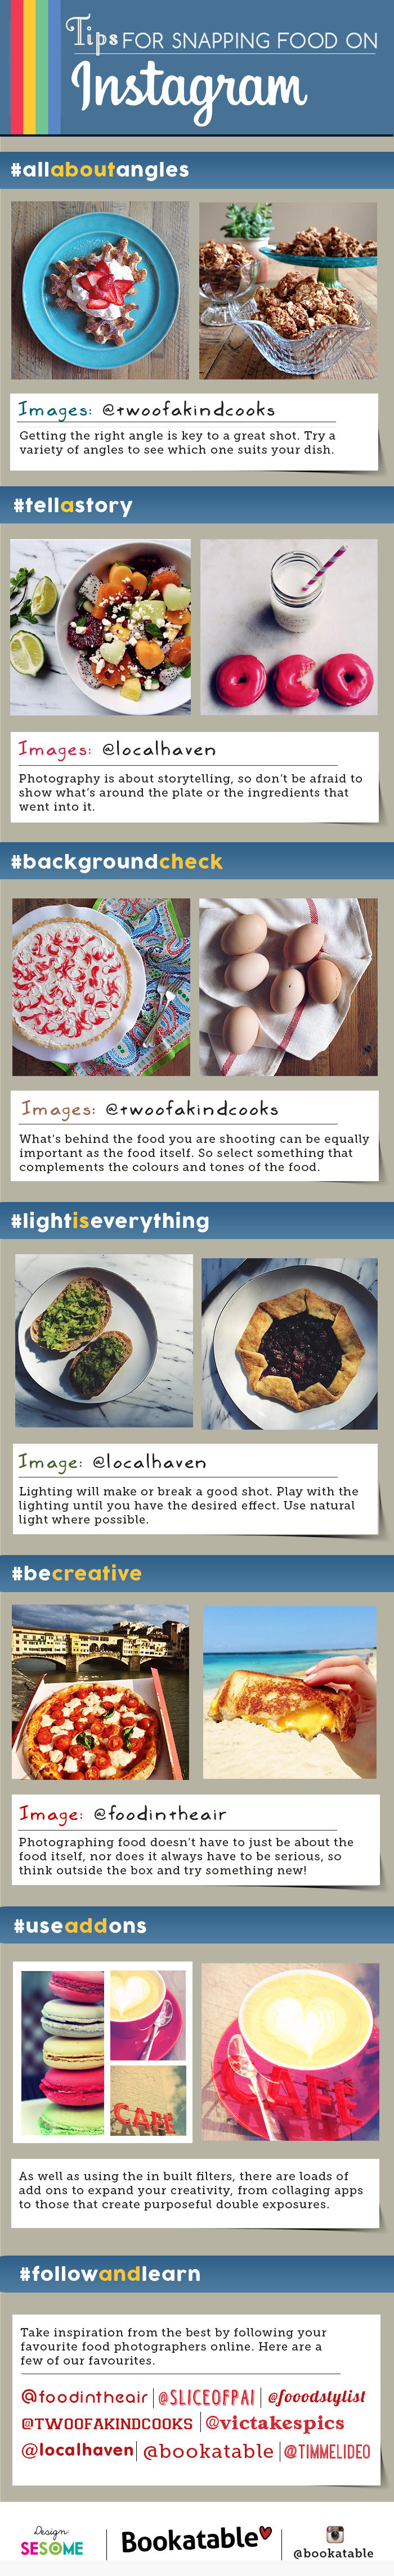 Infographic: Tips For Snapping Food On Instagram #infographic